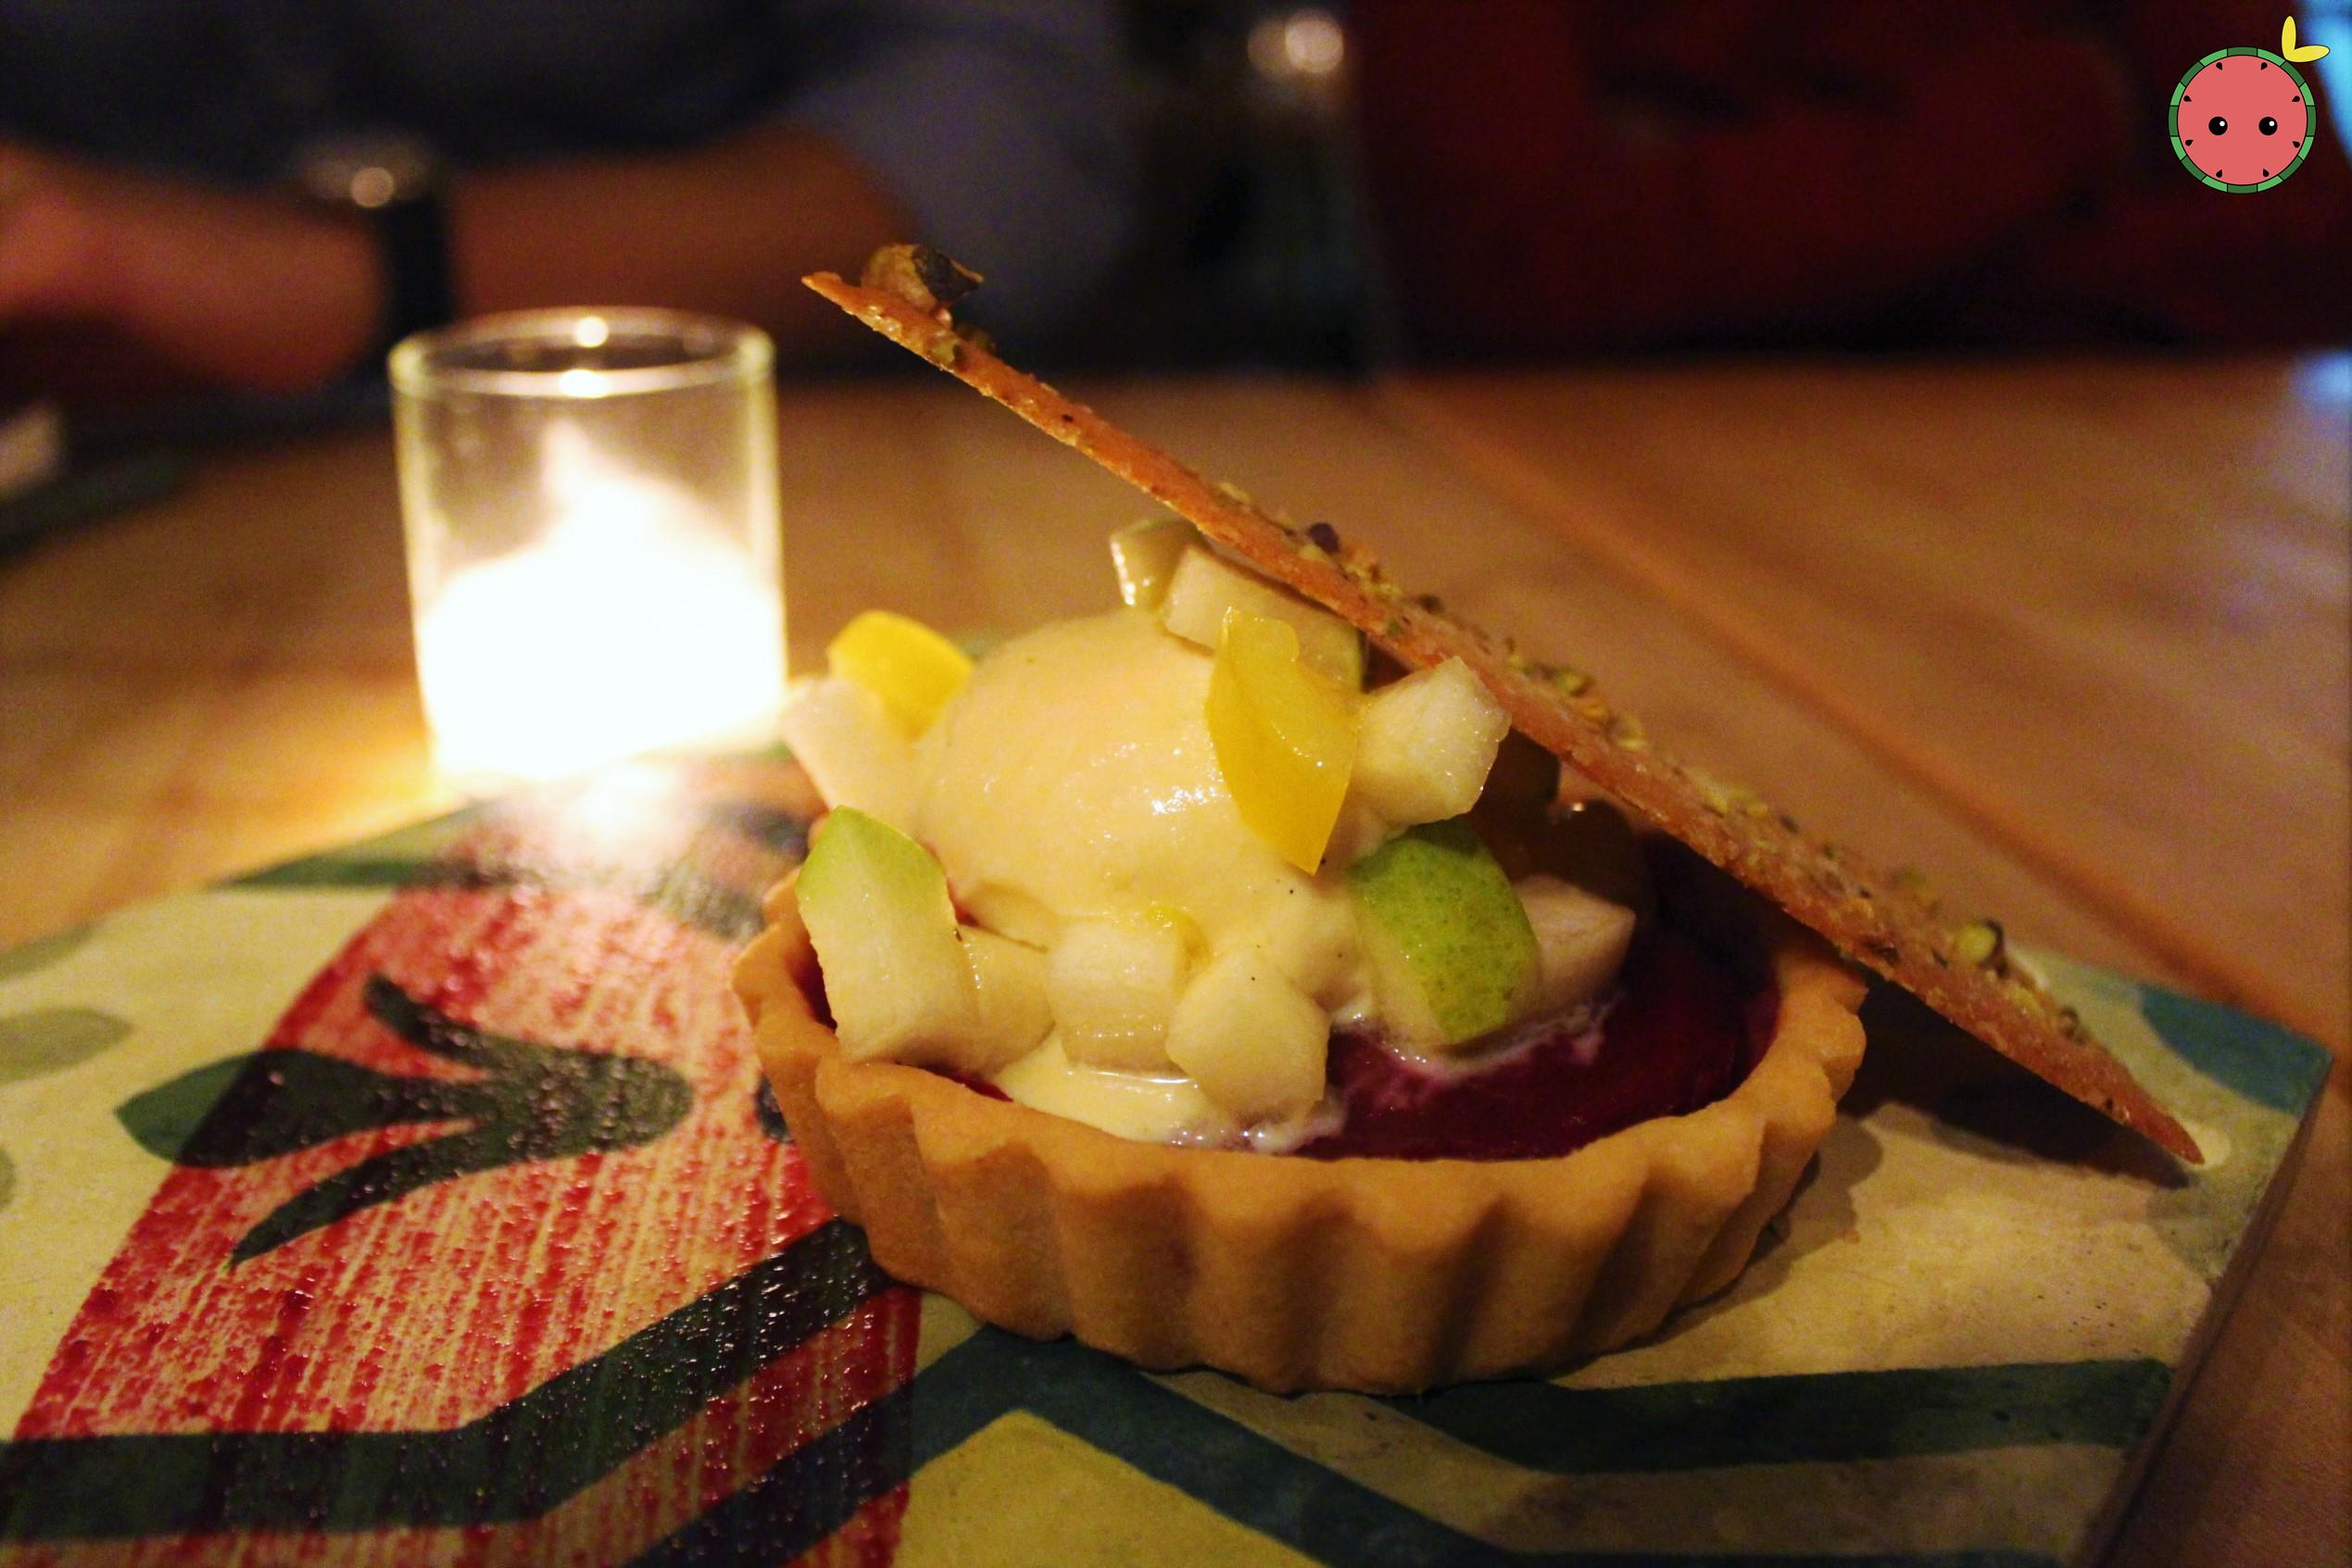 Dessert tart with ice cream